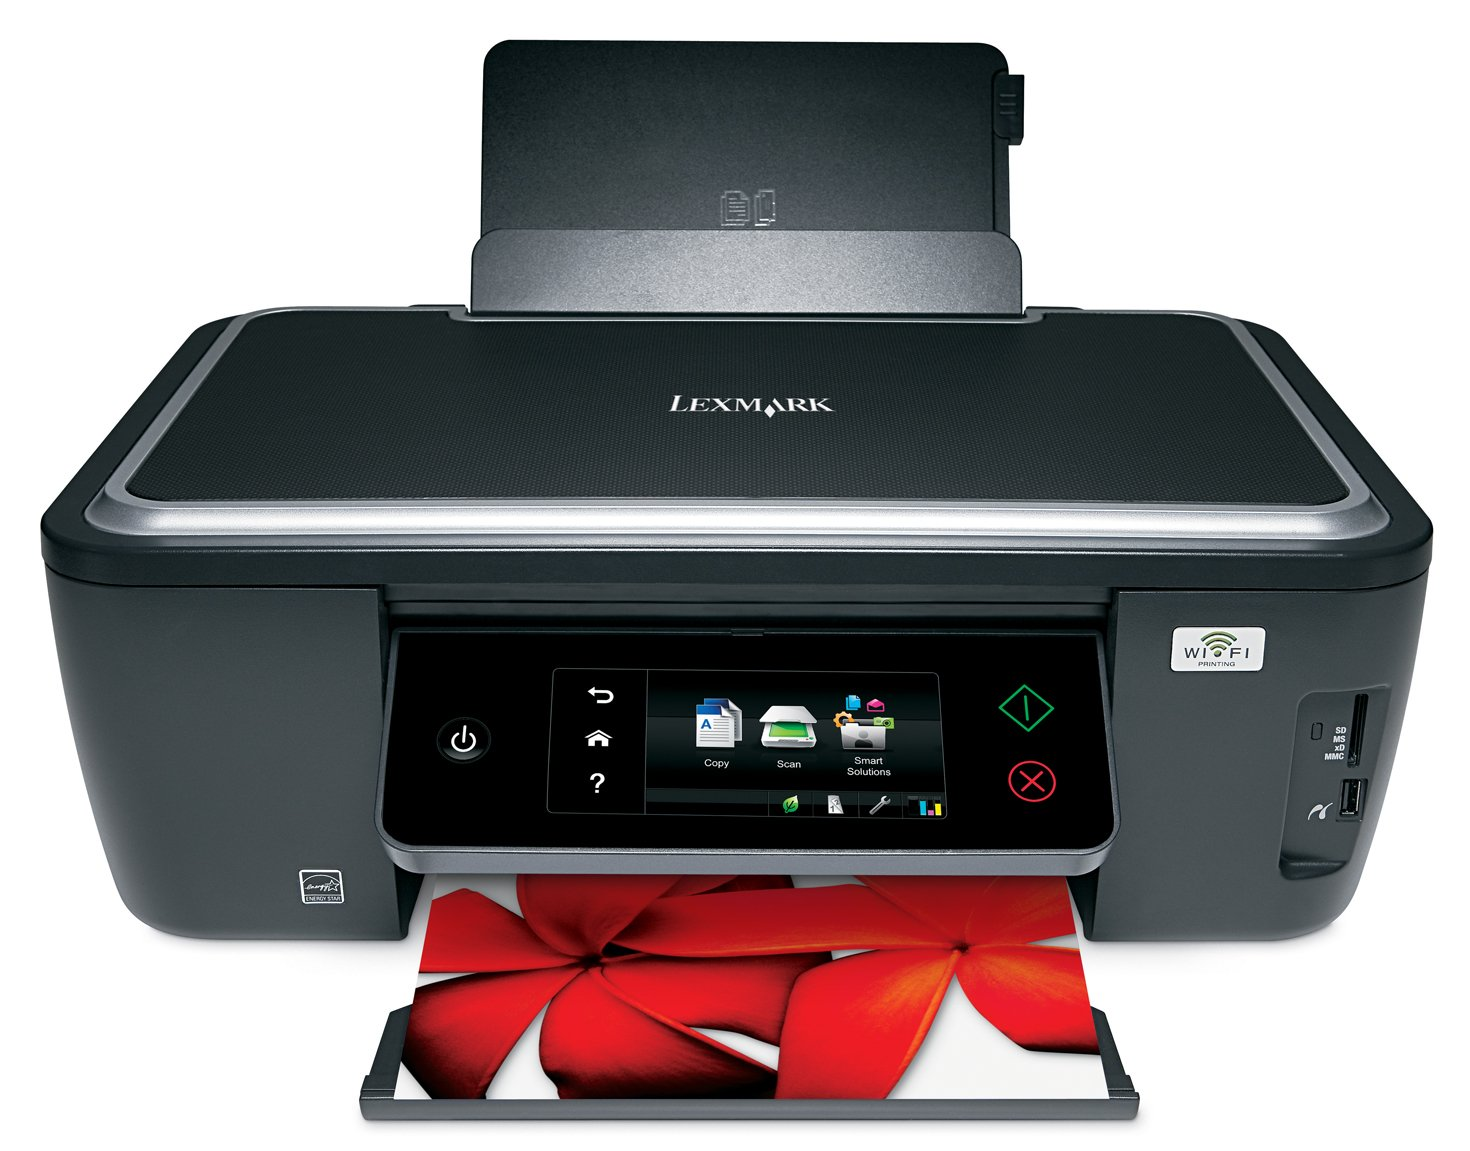 Lexmark Interact S605 Wireless Multifunction Inkjet Printer with Web-Enabled Touchscreen